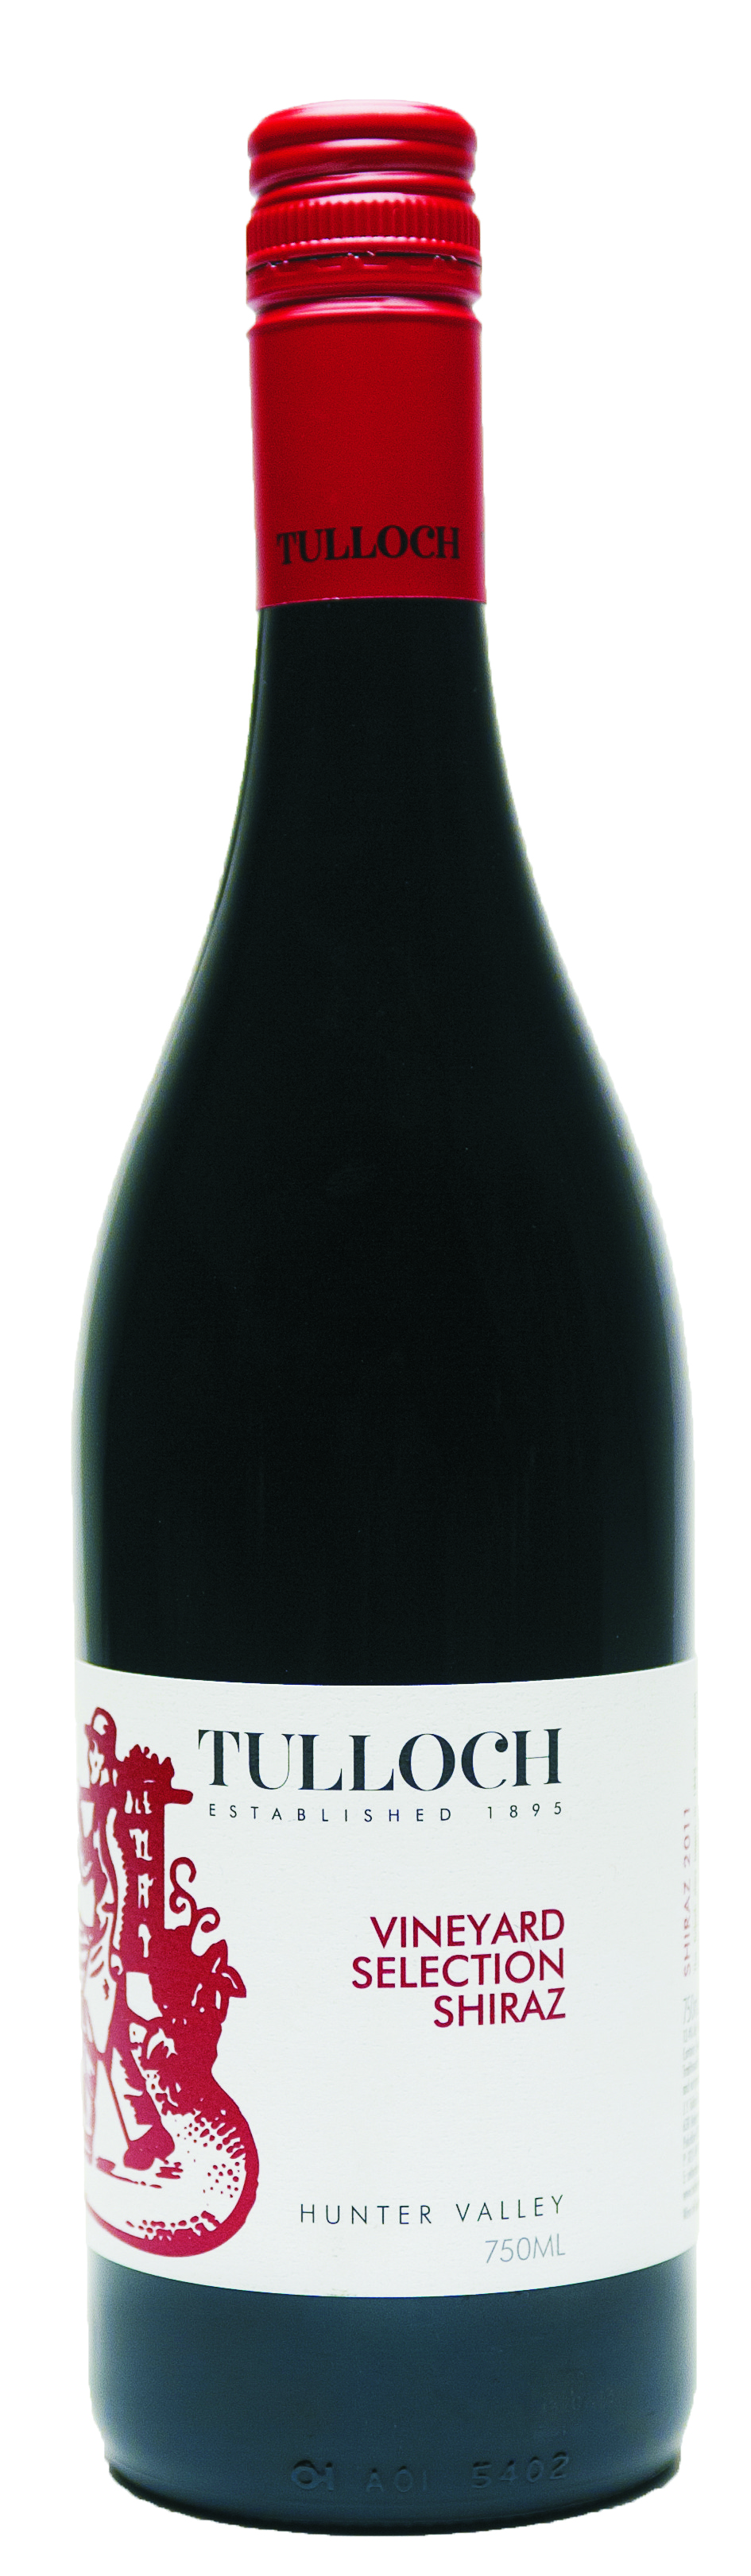 Vineyard Selection Shiraz